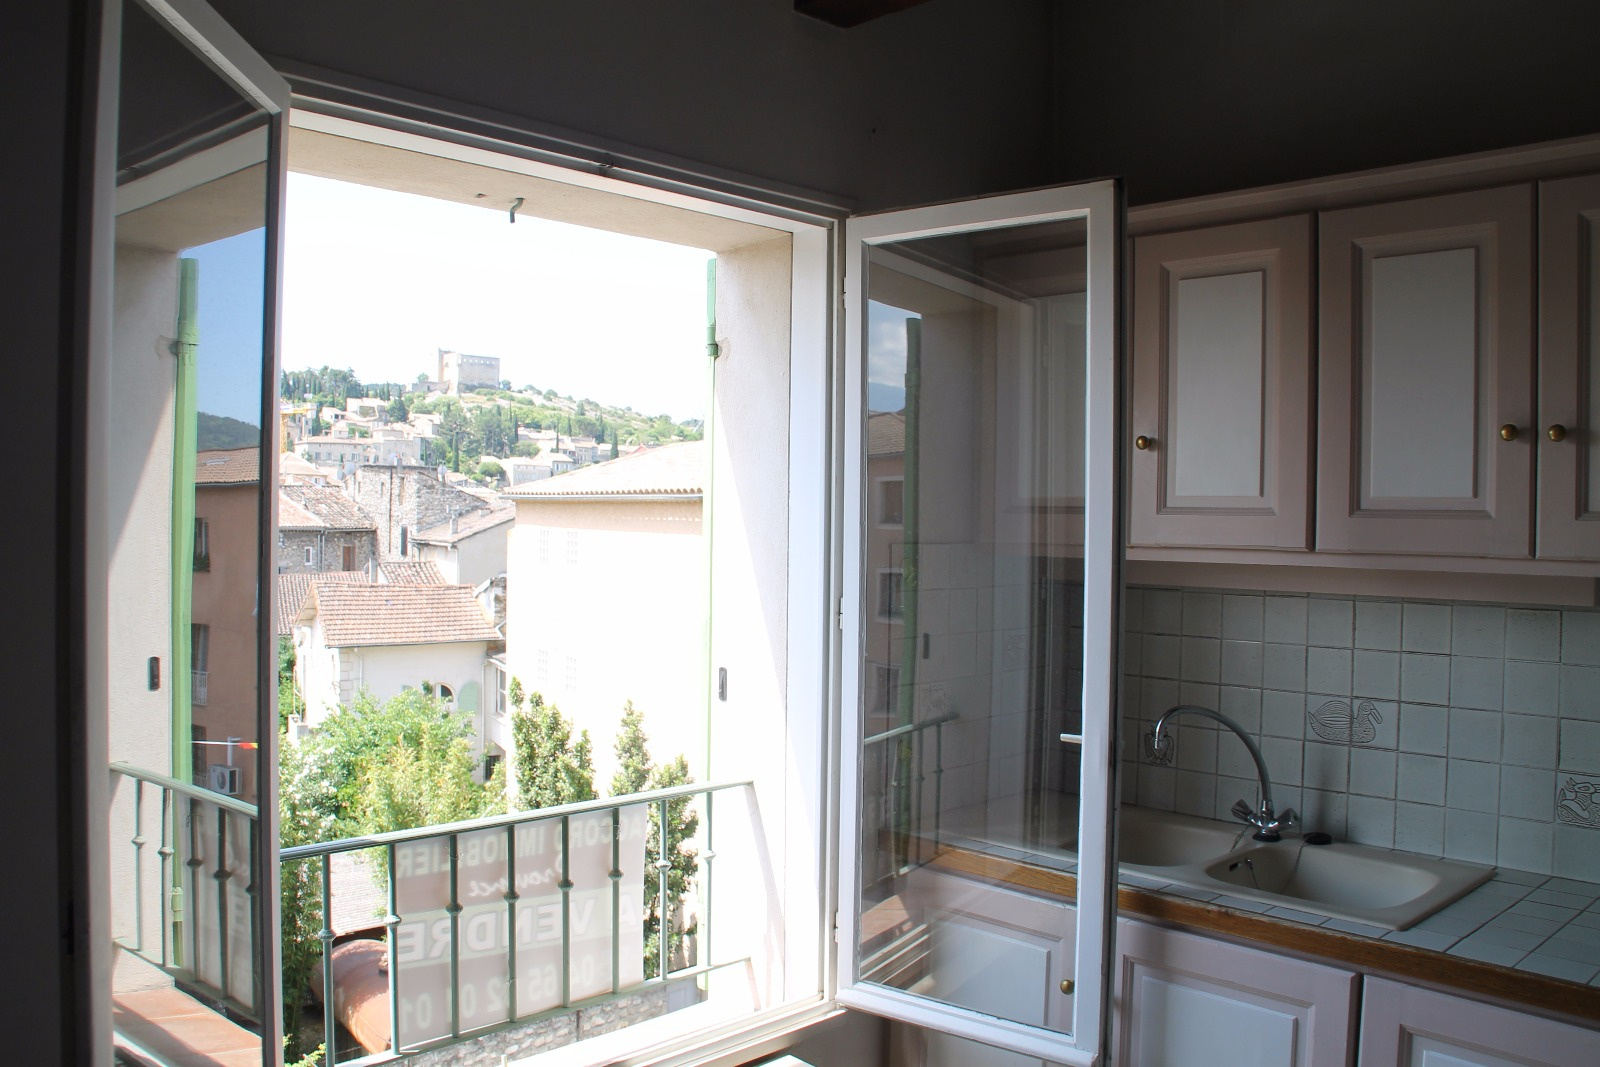 Vente vaison hyper centre ville de style loft bel for Appartement atypique 69